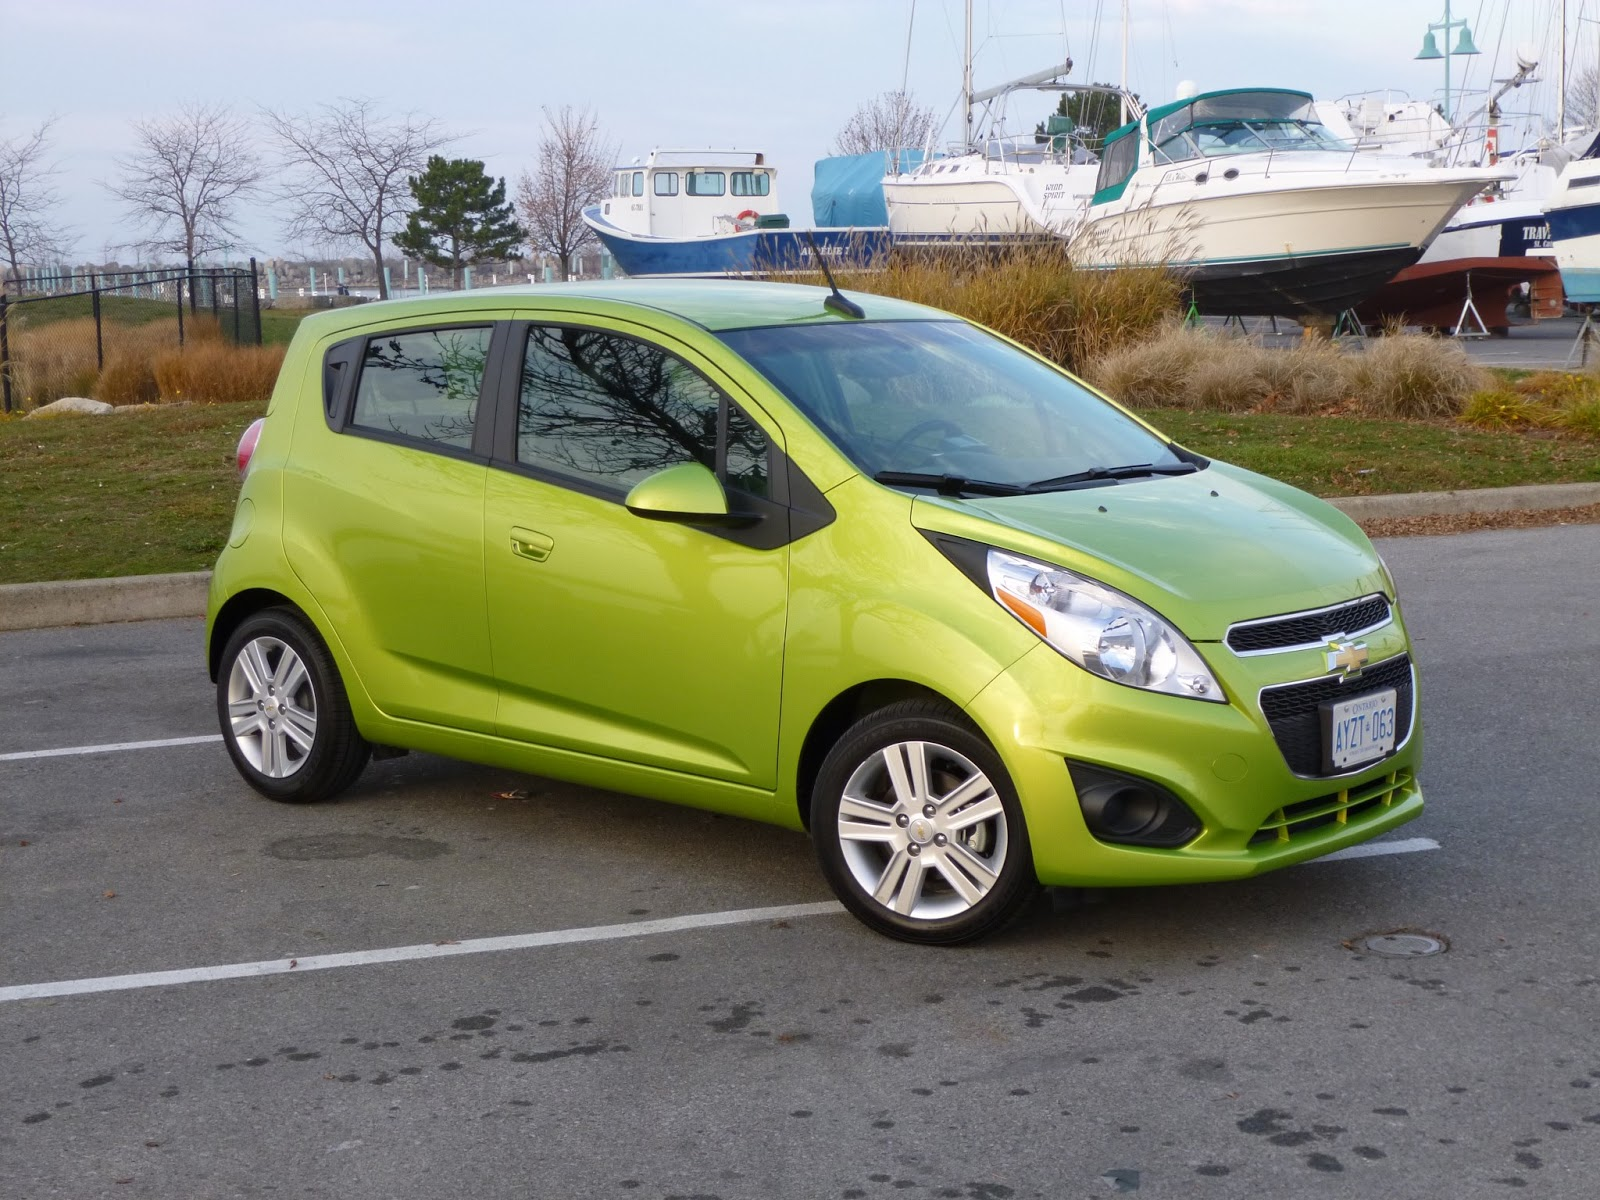 The 2017 Chevrolet Spark Is One Of Smallest Cars You That Can In America Today At Just 144 7 Inches Long It 2 Shorter Than A Mini